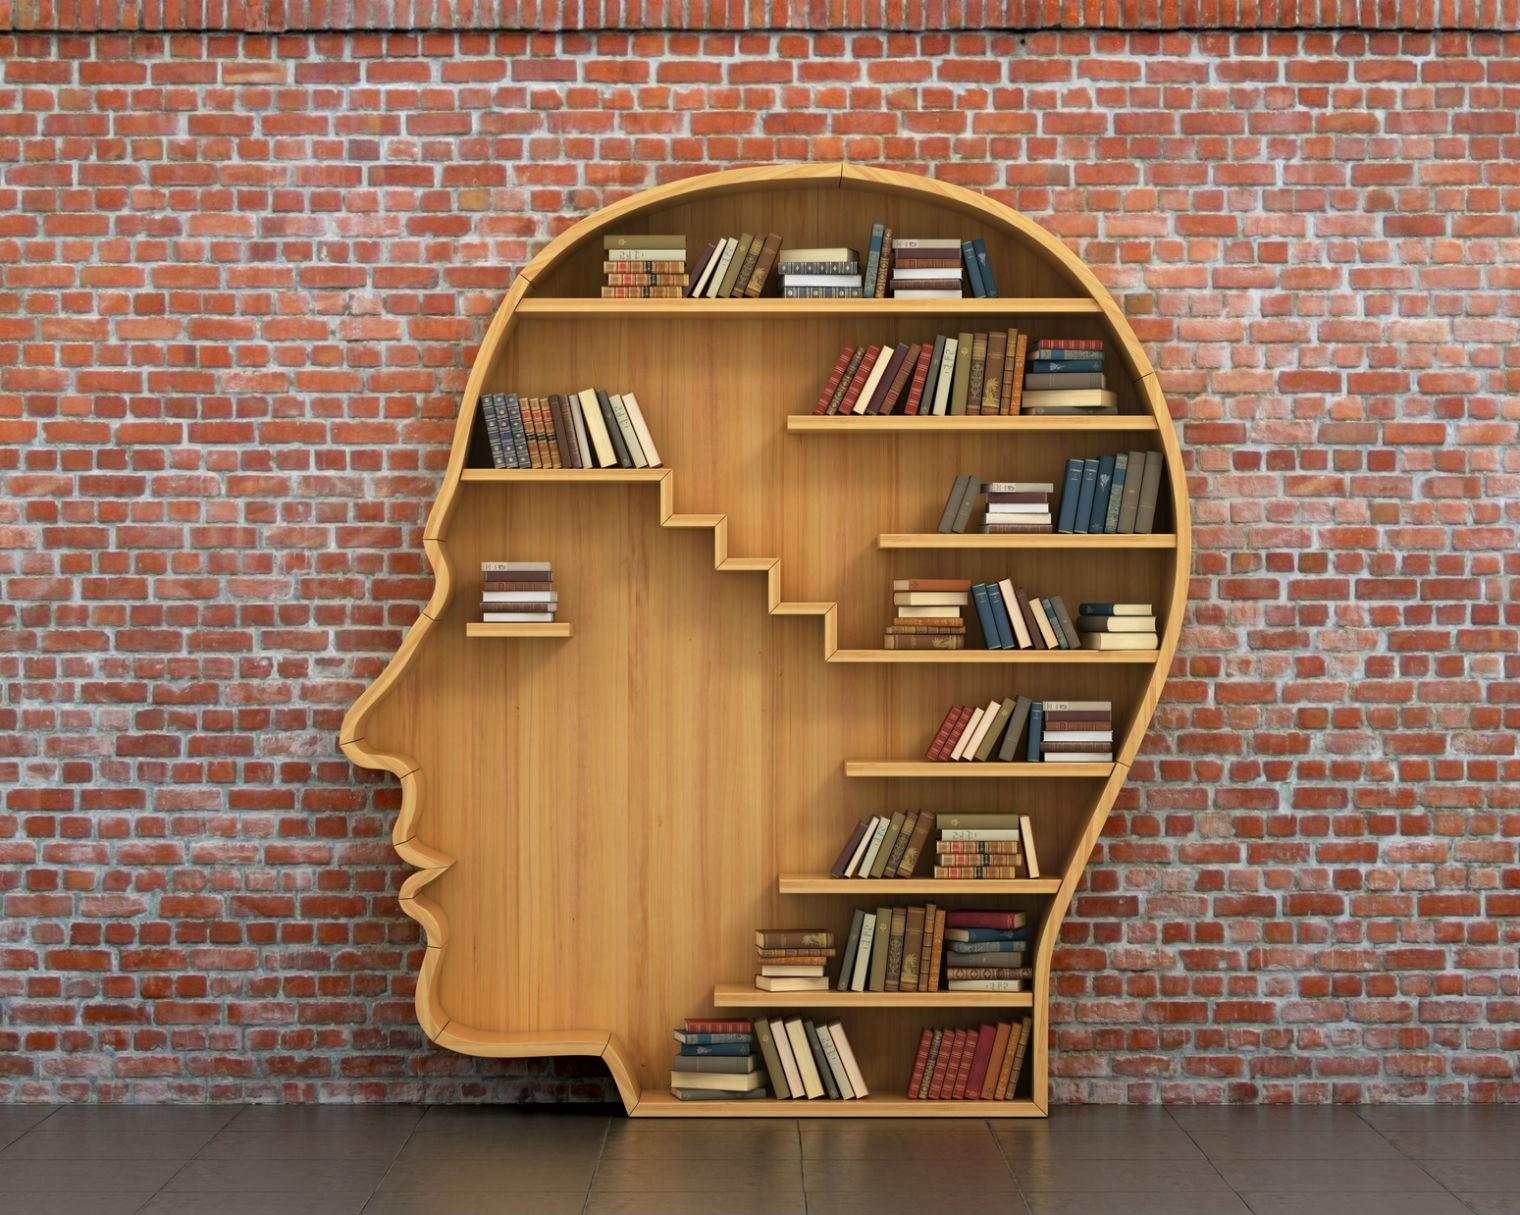 The 48 books every student should read